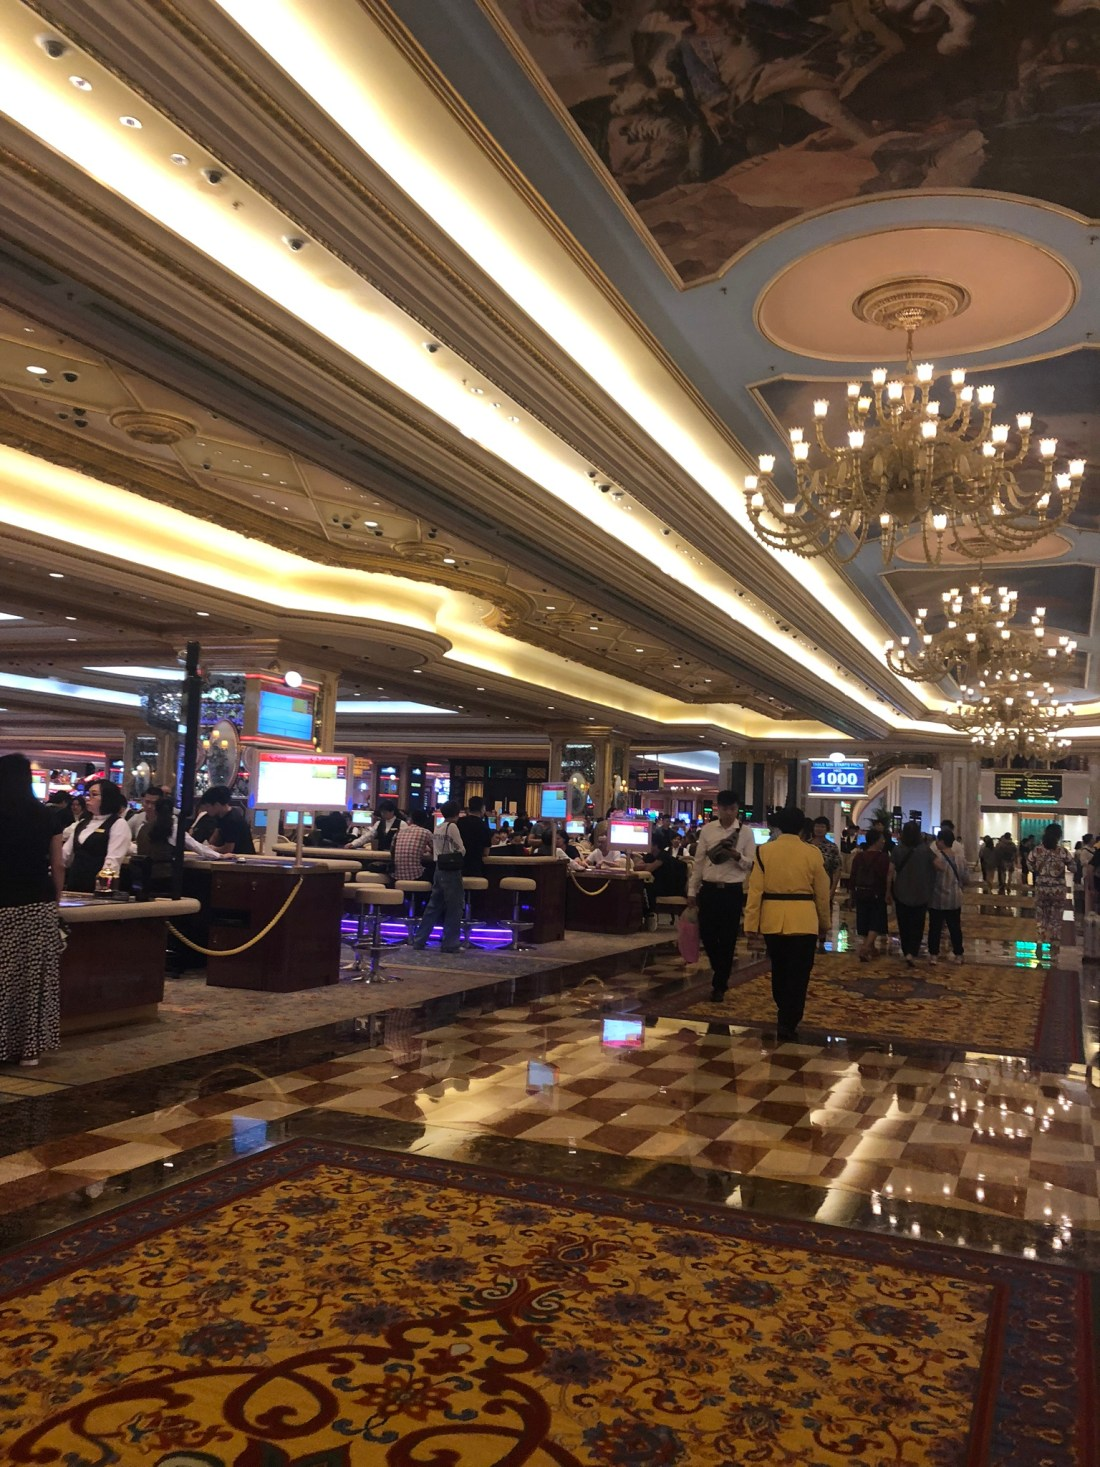 The Venetian, Macau casino on the Cotai Strip